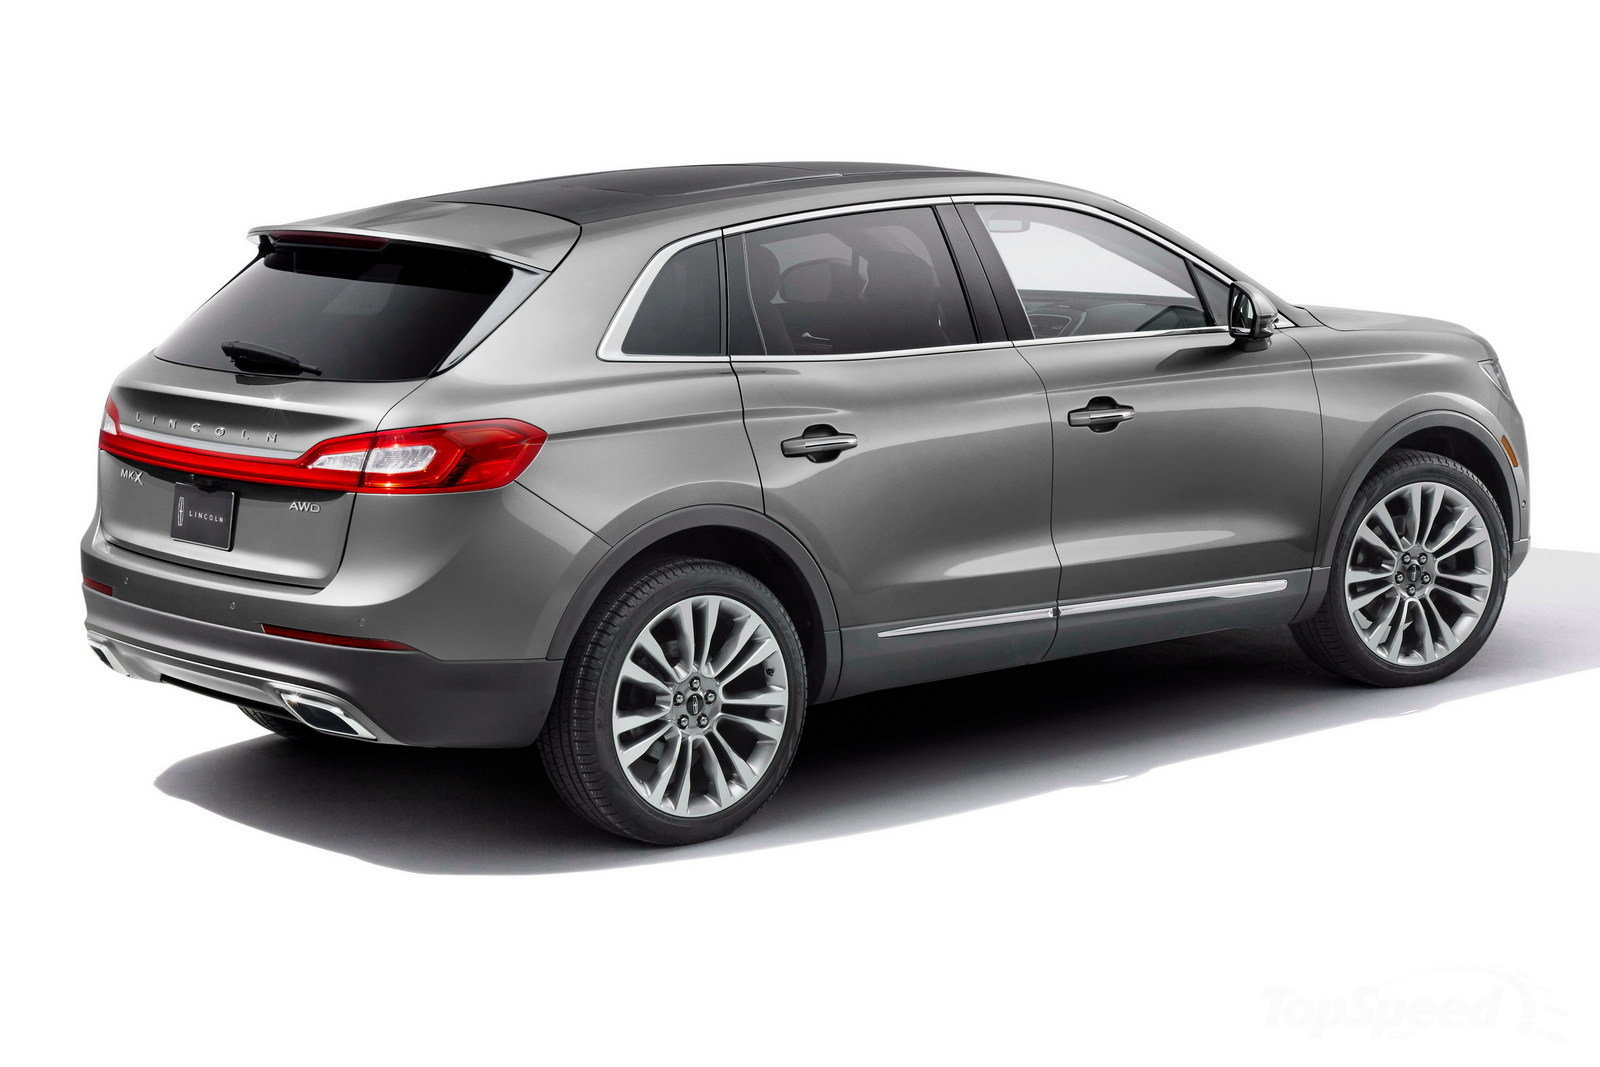 2016 Lincoln Mkx #11